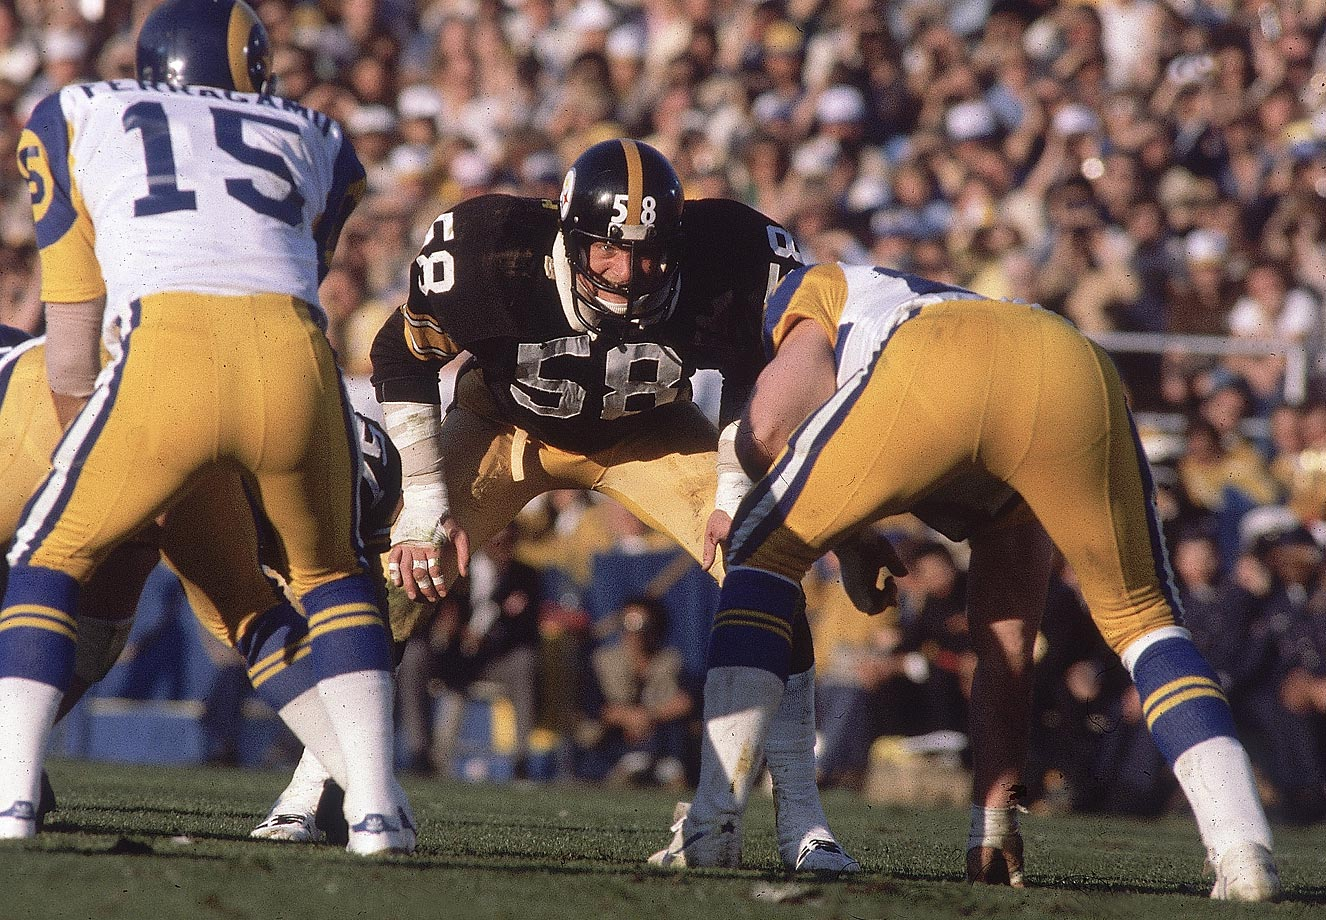 Pittsburgh middle linebacker Jack Lambert gets ready to inflict damage on the Los Angeles Rams in Super Bowl XIV. His fourth-quarter interception helped seal the victory for the Steelers.